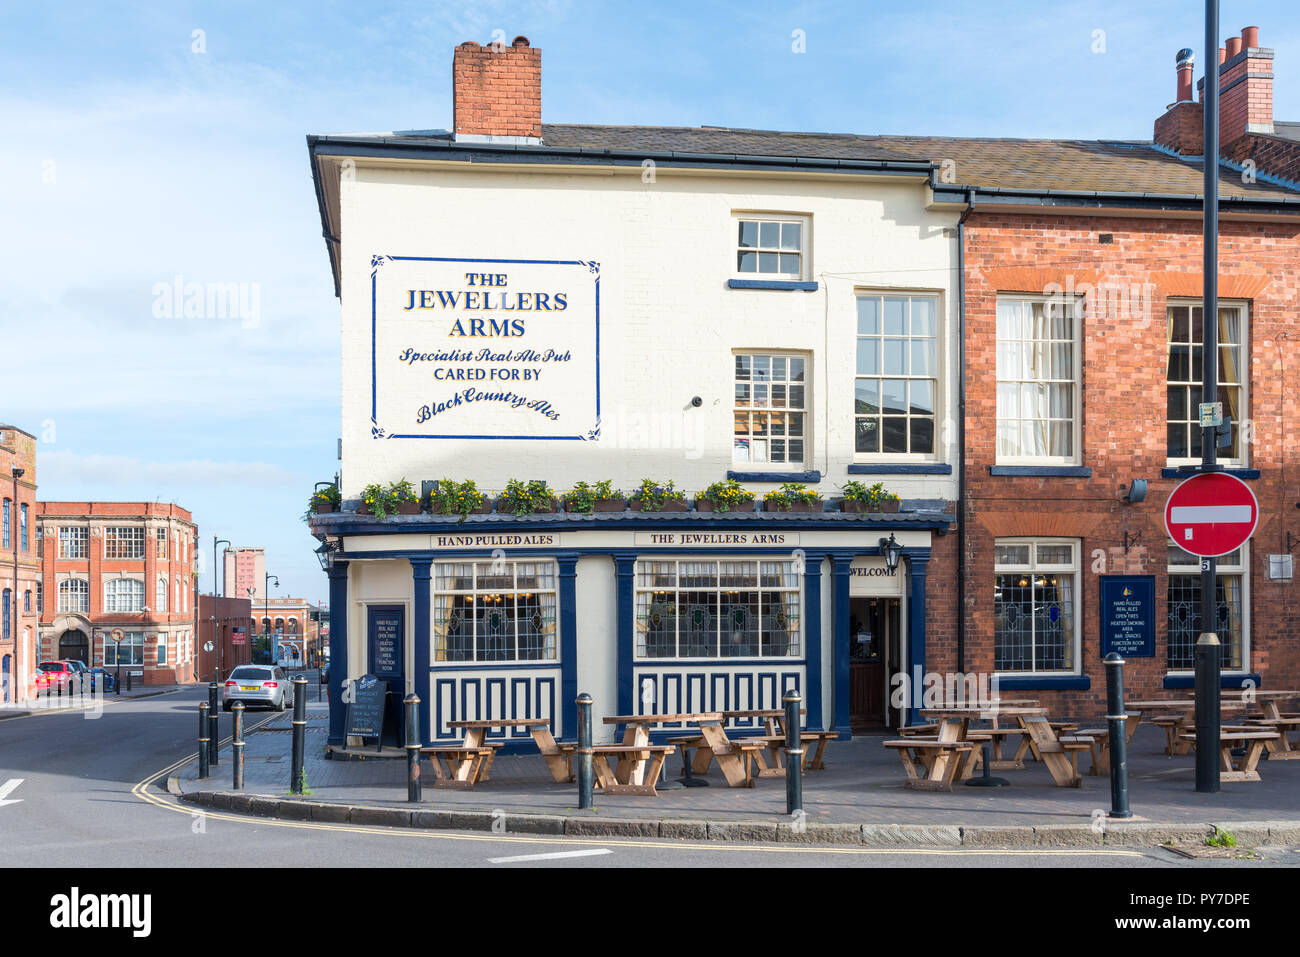 The Jewellers Arms Victorian pub in Hockley Street in Birmingham's Jewellery Quarter - Stock Image